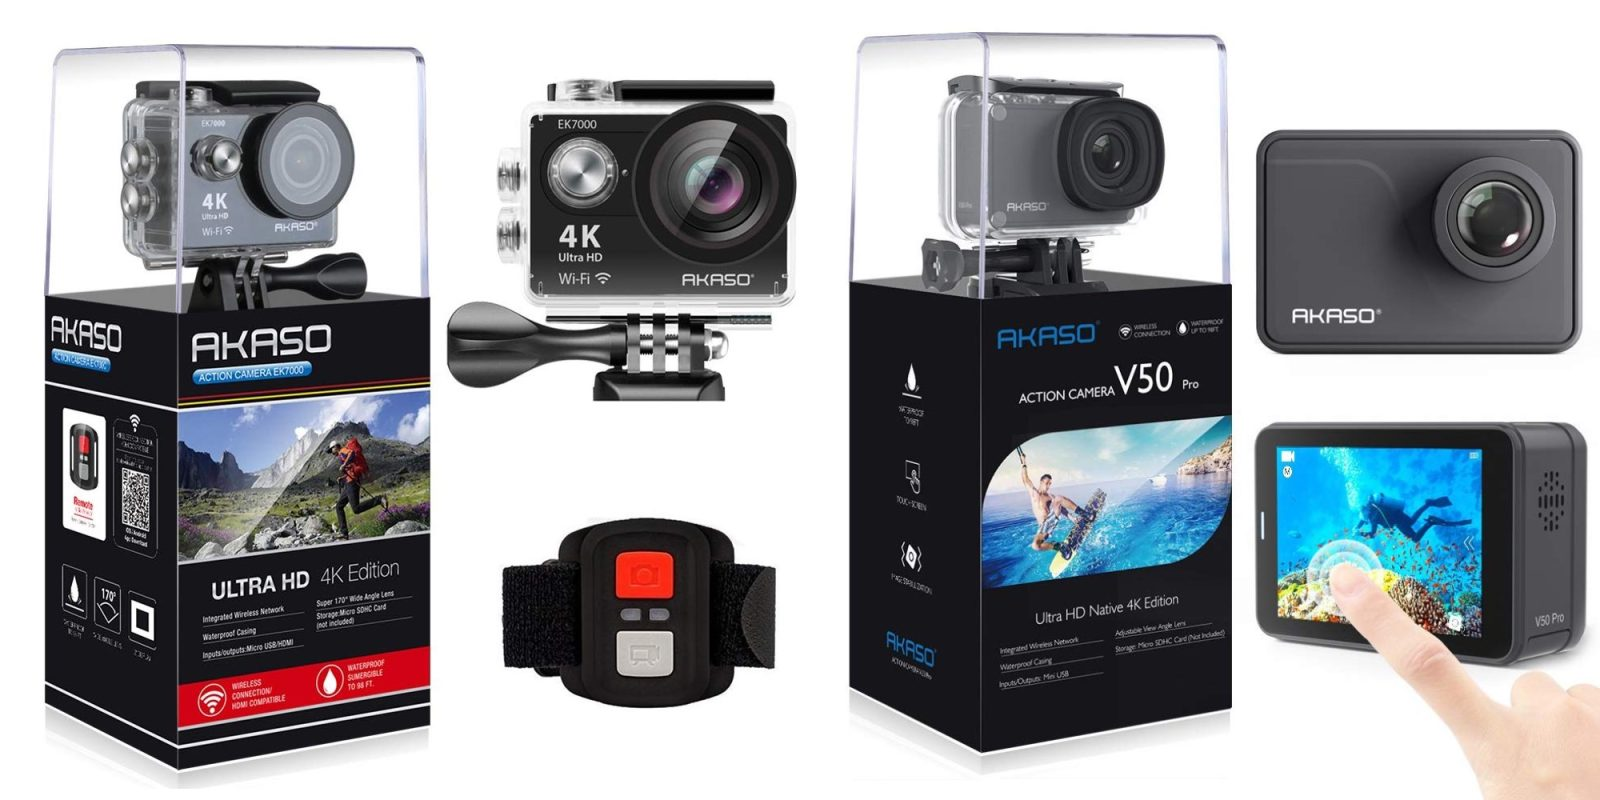 Today's Gold Box takes up to 28% off highly-rated 4K action cameras from $43